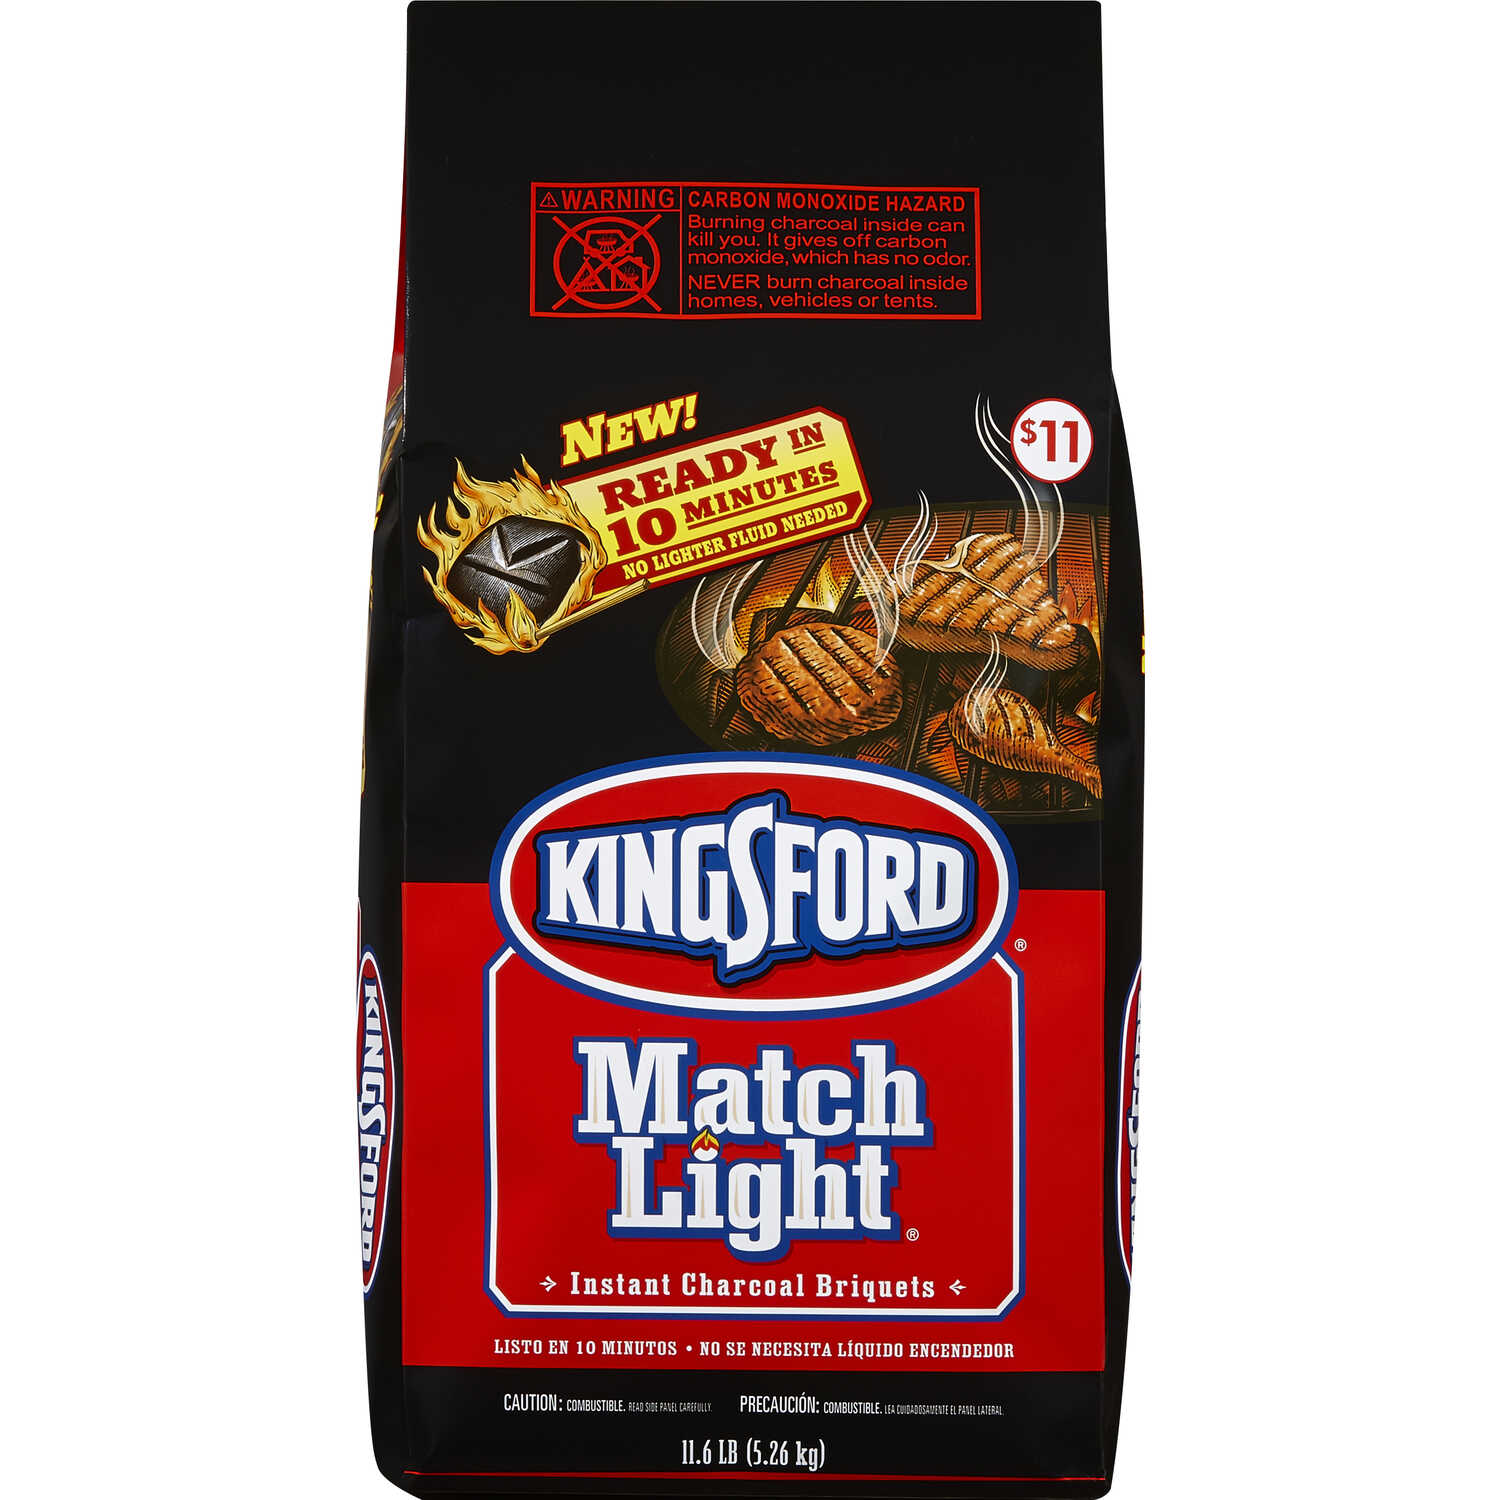 Kingsford  Match Light  Original  Charcoal Briquettes  11.6 lb.